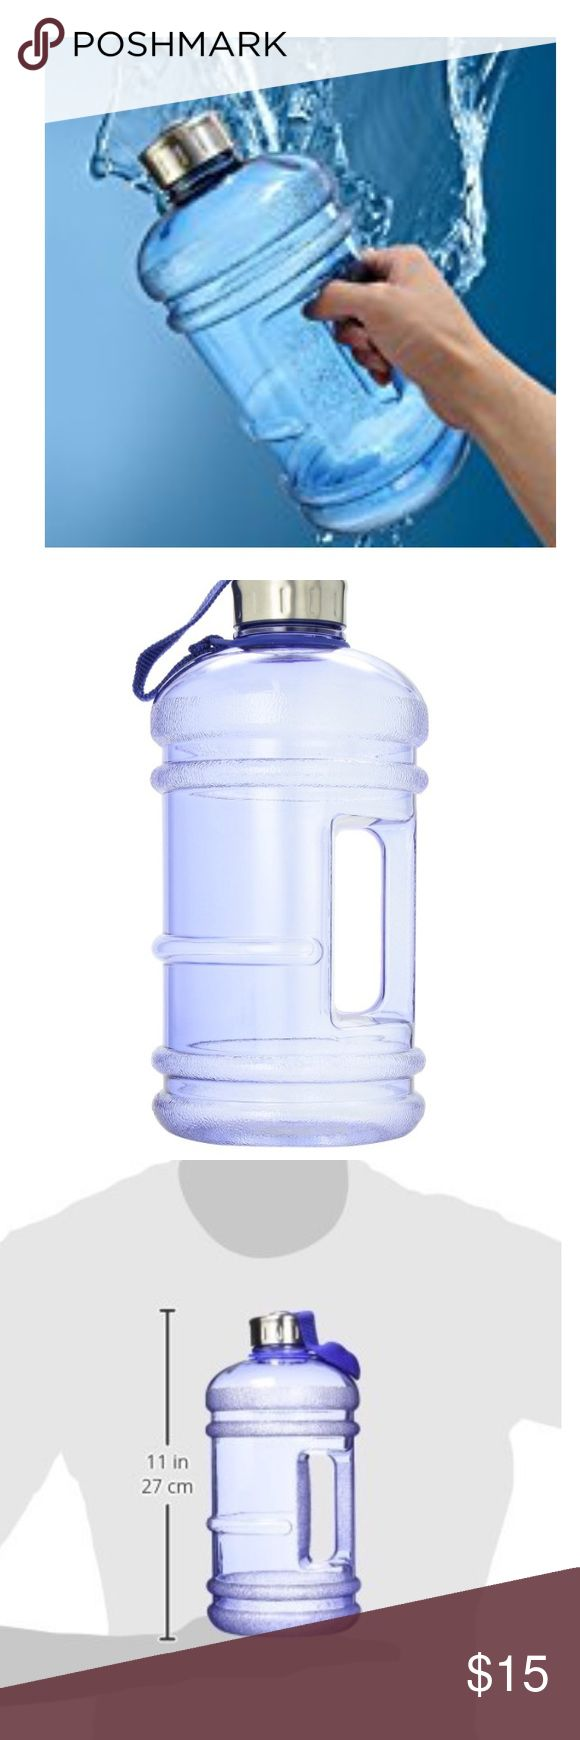 💪🏼Fitness - Half-Gallon Water Bottle BPA Free. Transparent light blue.  ✅Great deal!✅ Save with bundle discounts💰 I also offer customized bundles🛍  Interested? Leave a comment below 👇🏼 ~~~~~~~~~~~~~~~~~~~~~~~~~~~~~~ Accessories